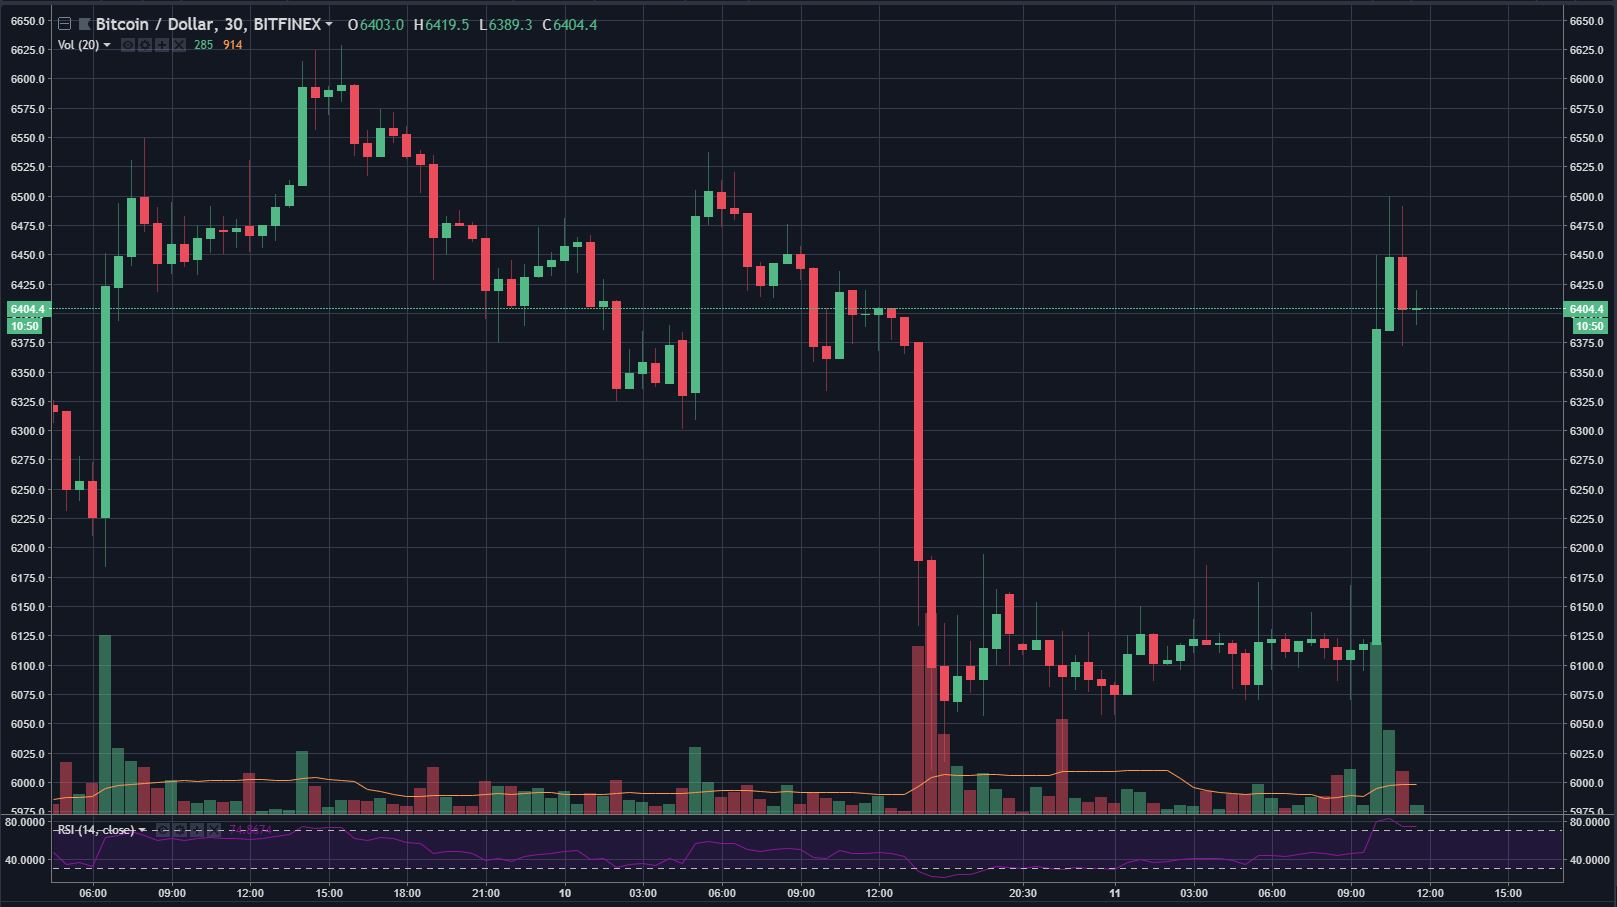 Bitcoin Sees $350 Recovery, Amidst Altcoin Drop Off 14